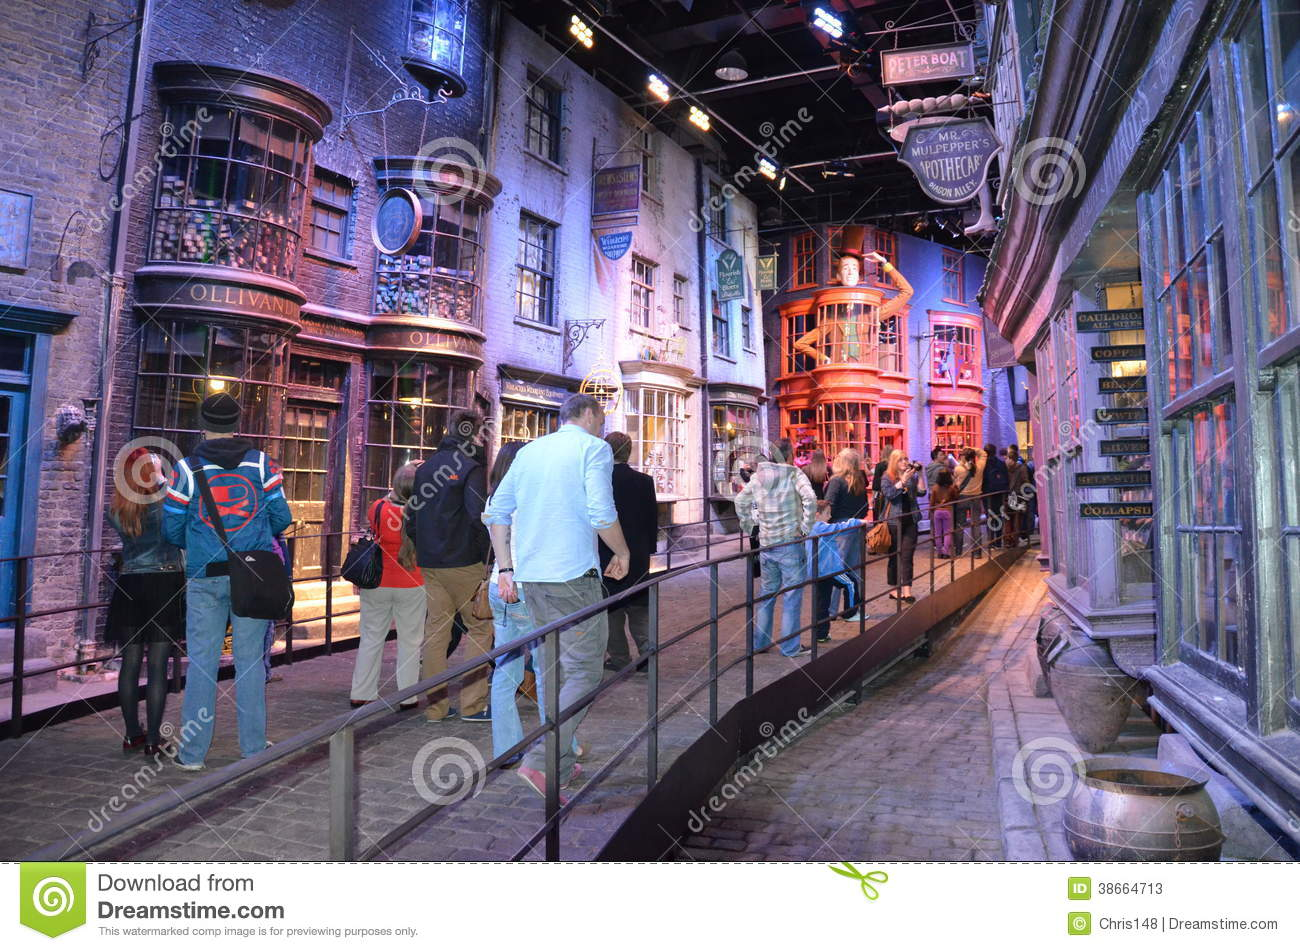 Warner brothers harry potter sweepstakes to london